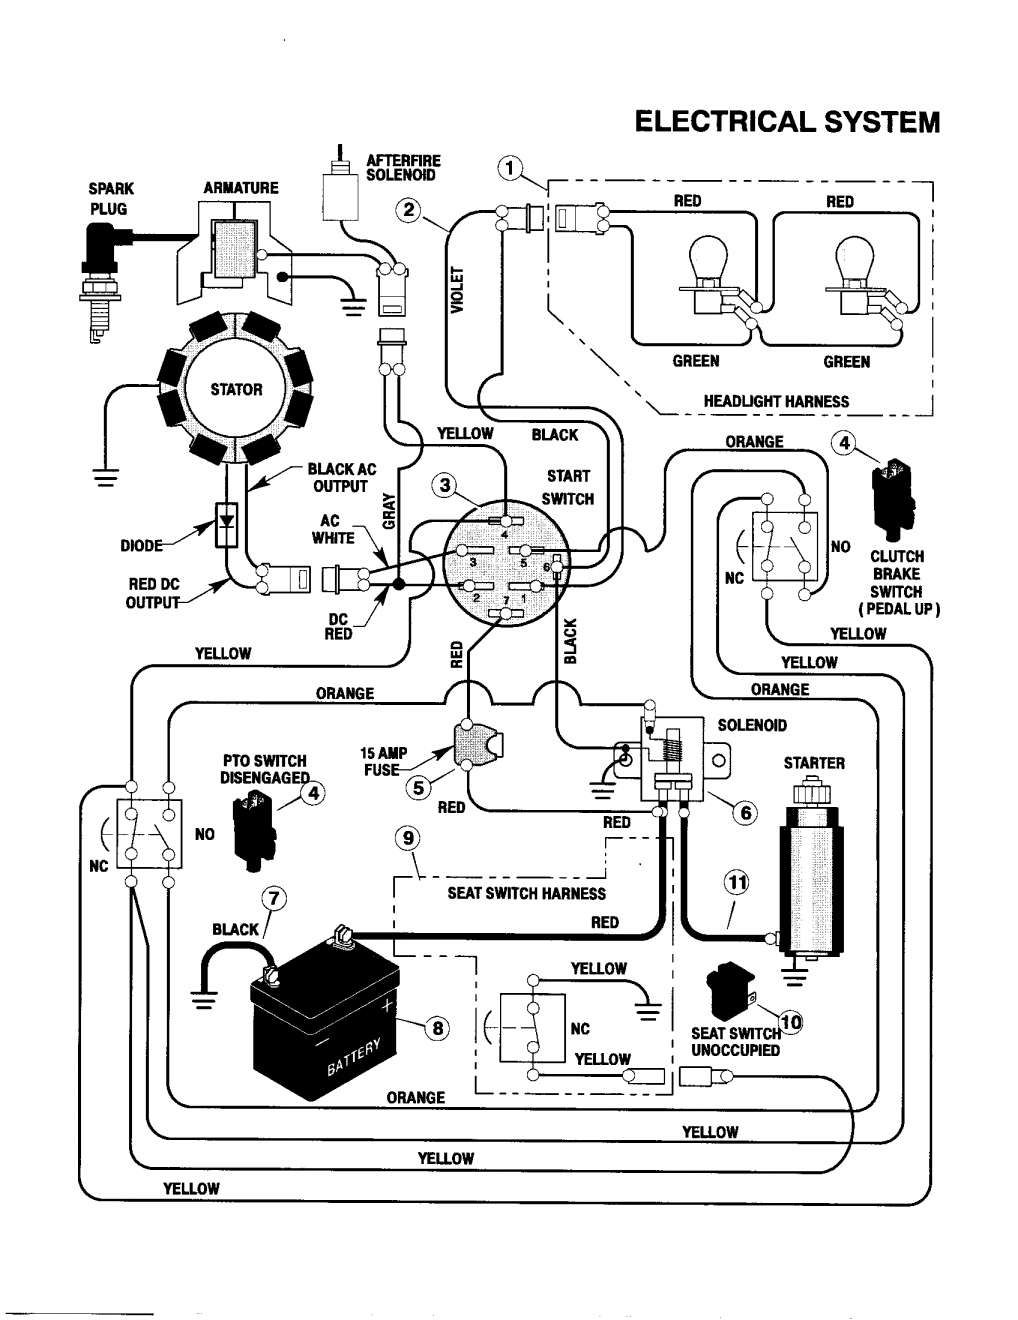 Murray 12hp Ignition Switch Wiring Diagram - Wiring Diagram Replace  ball-expect - ball-expect.miramontiseo.it | Two Cylinder Wiring Diagram Murray |  | ball-expect.miramontiseo.it